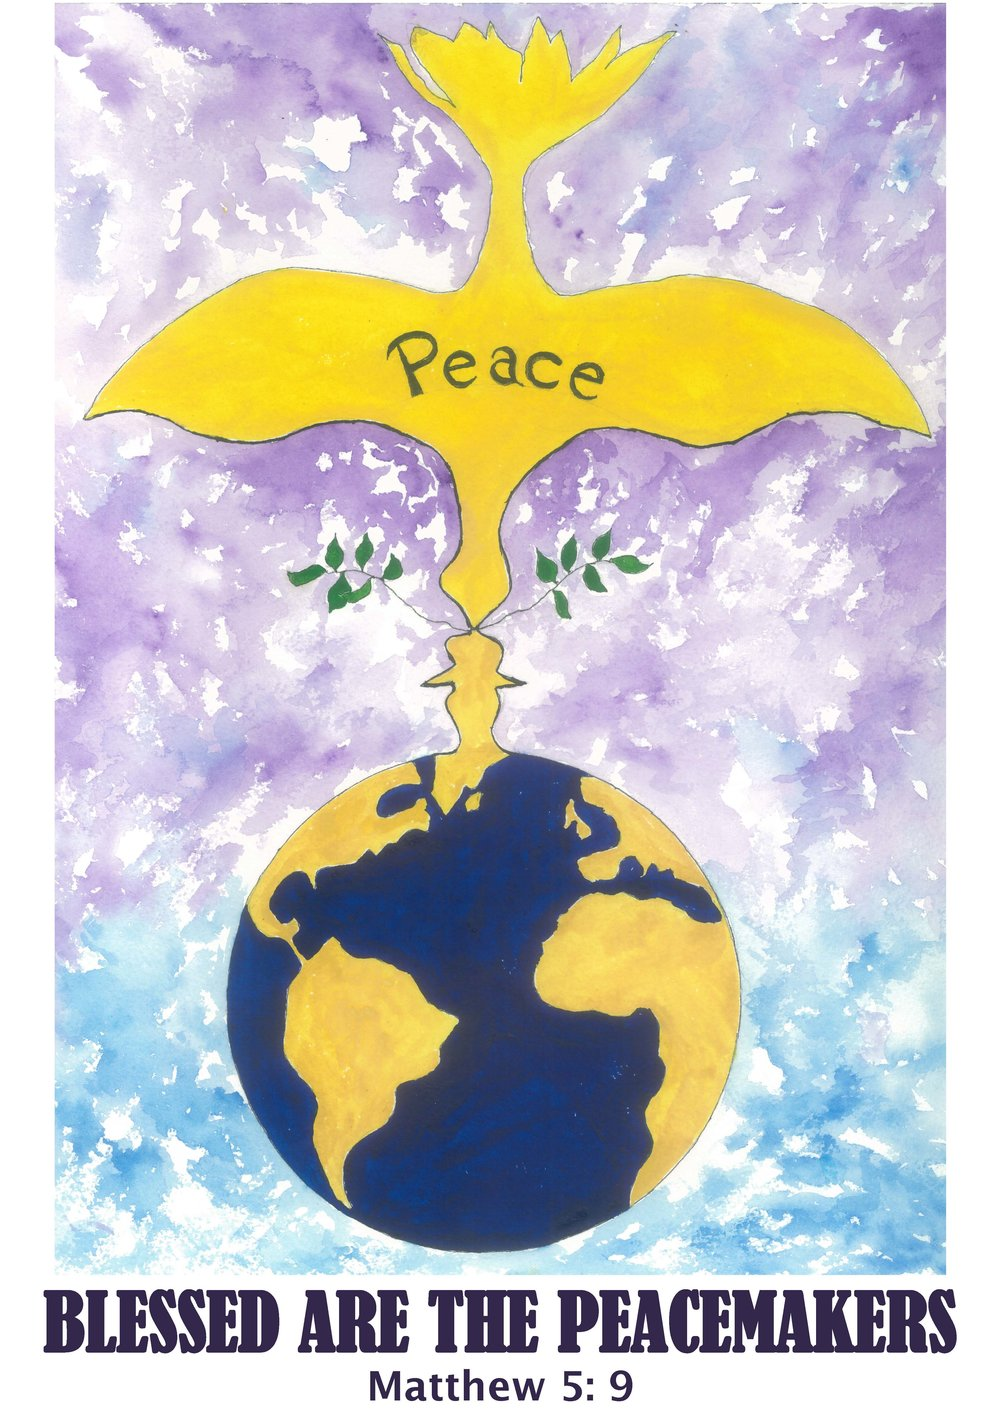 Music Makers and Peacemakers is a 9 month project collecting music, art, photography, video that inspires us to become better peacemakers in this world.                                                                         Artwork by Alice Baklayan